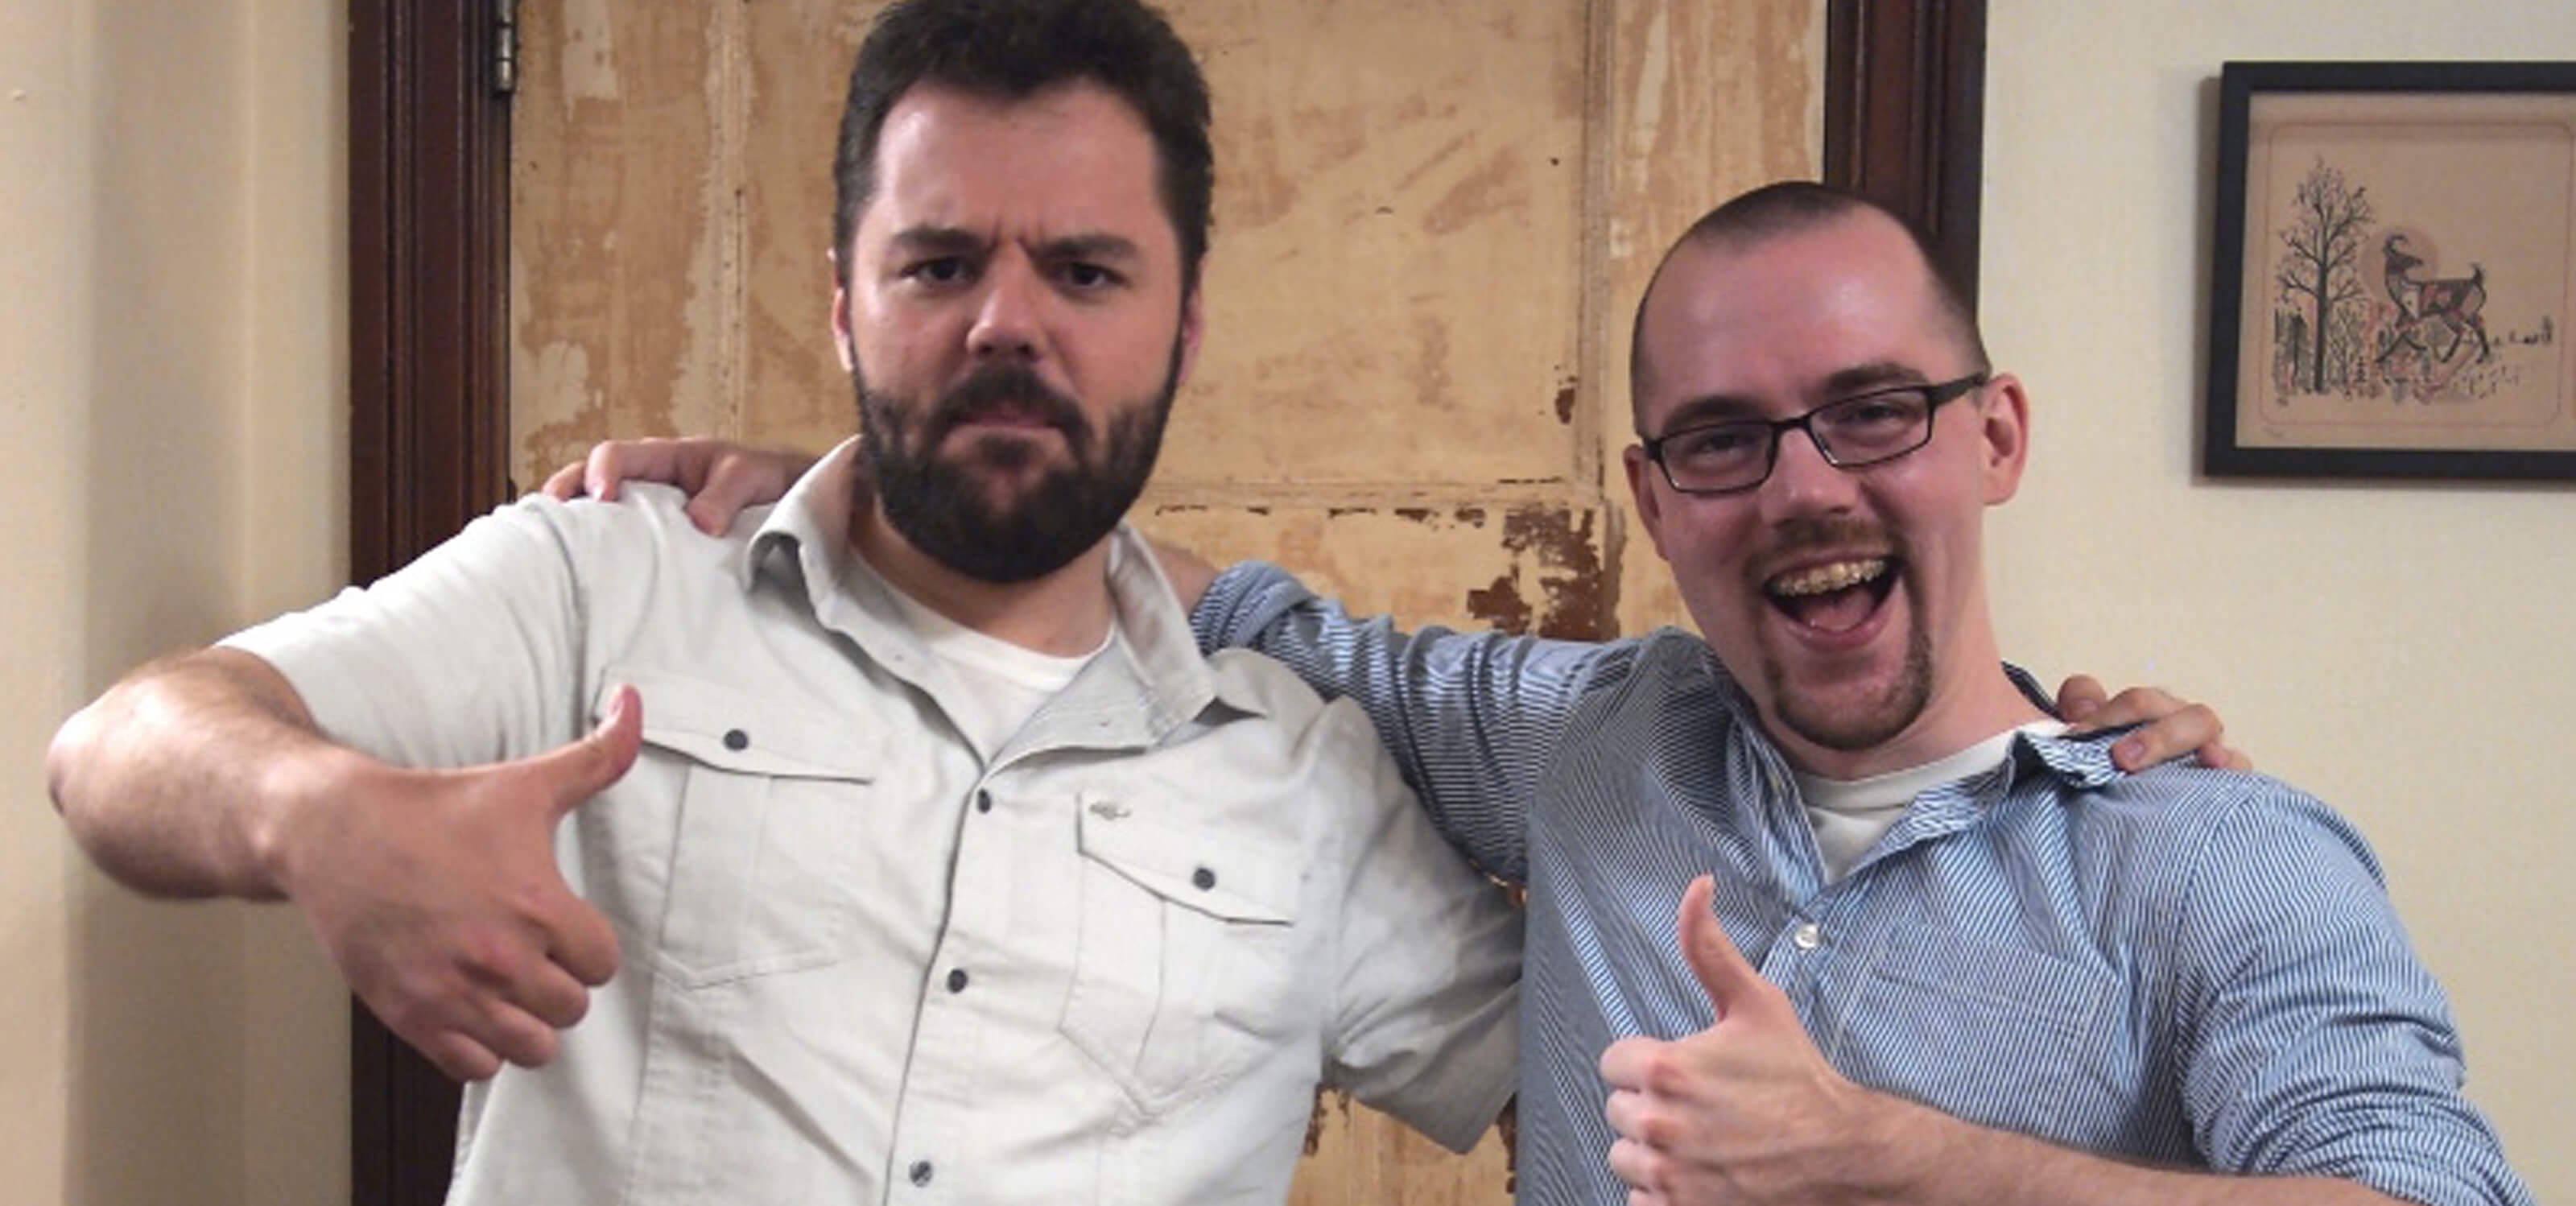 DigiPen graduate brothers Cody and Cale Haskell giving thumbs-up to the camera